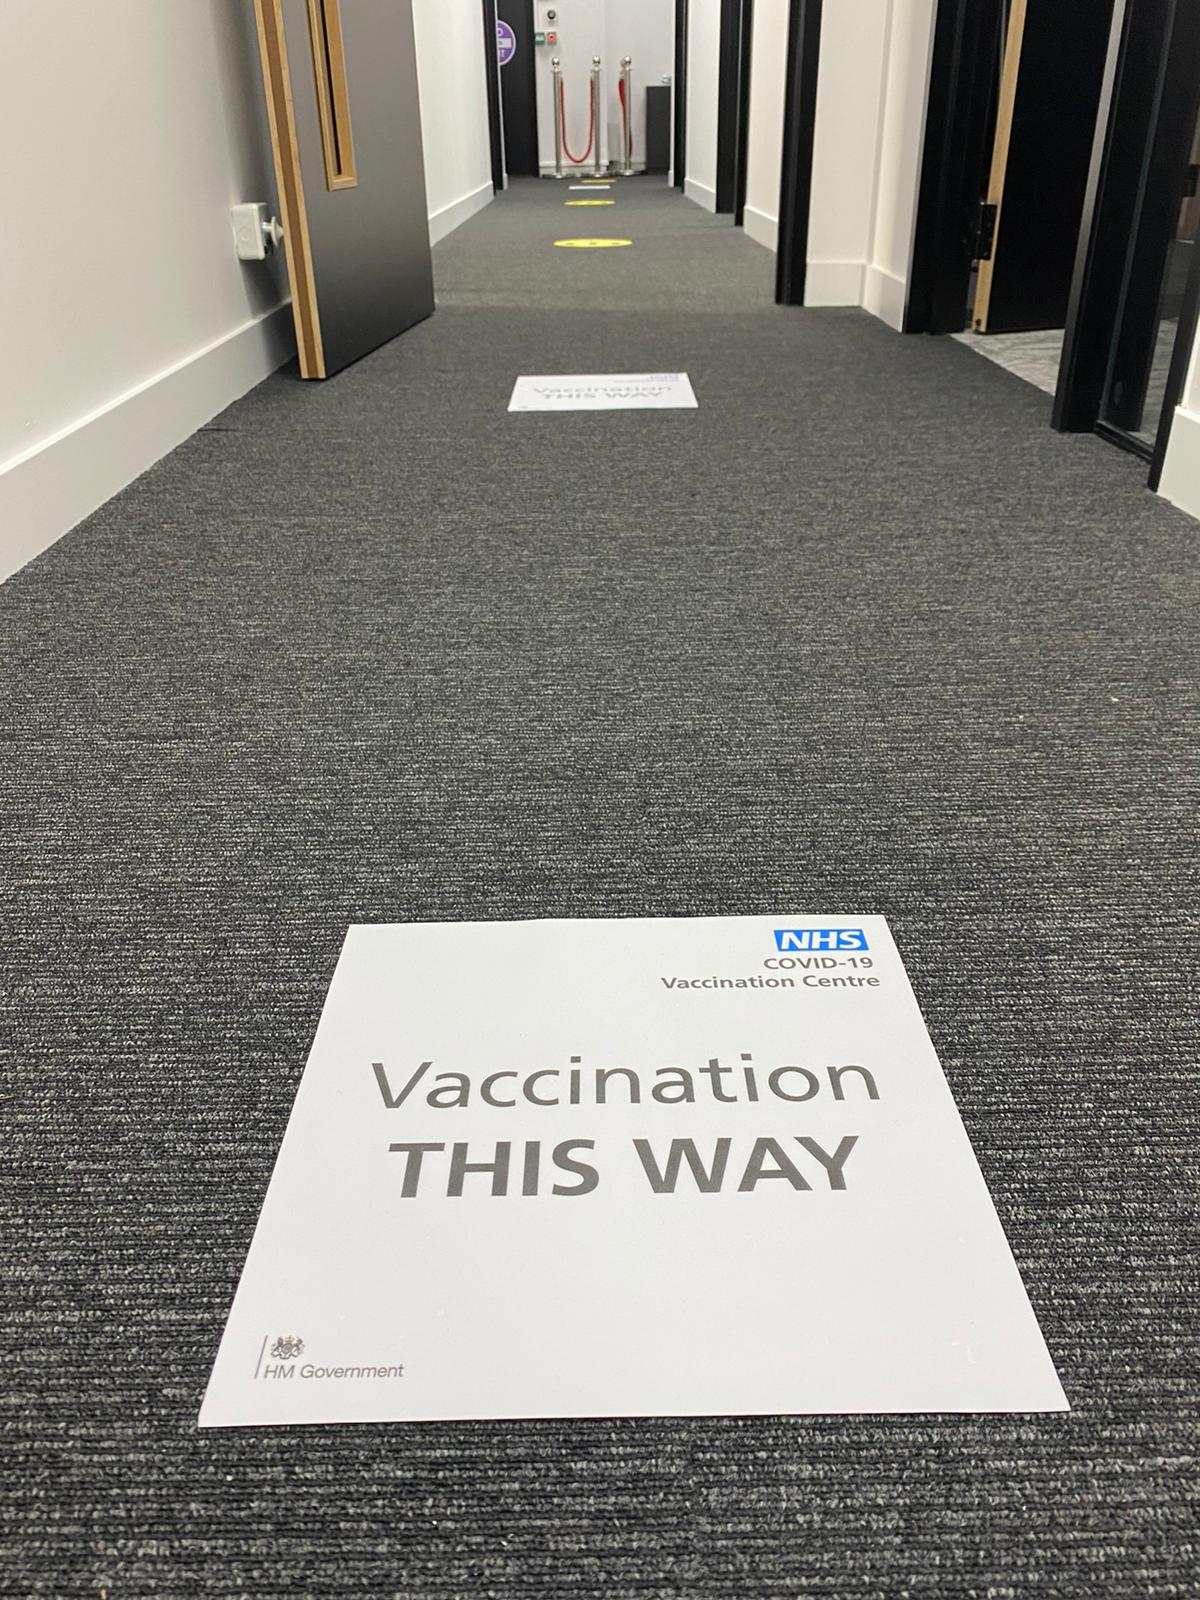 Globe Print uses Drytac films for a new COVID-19 vaccination center.